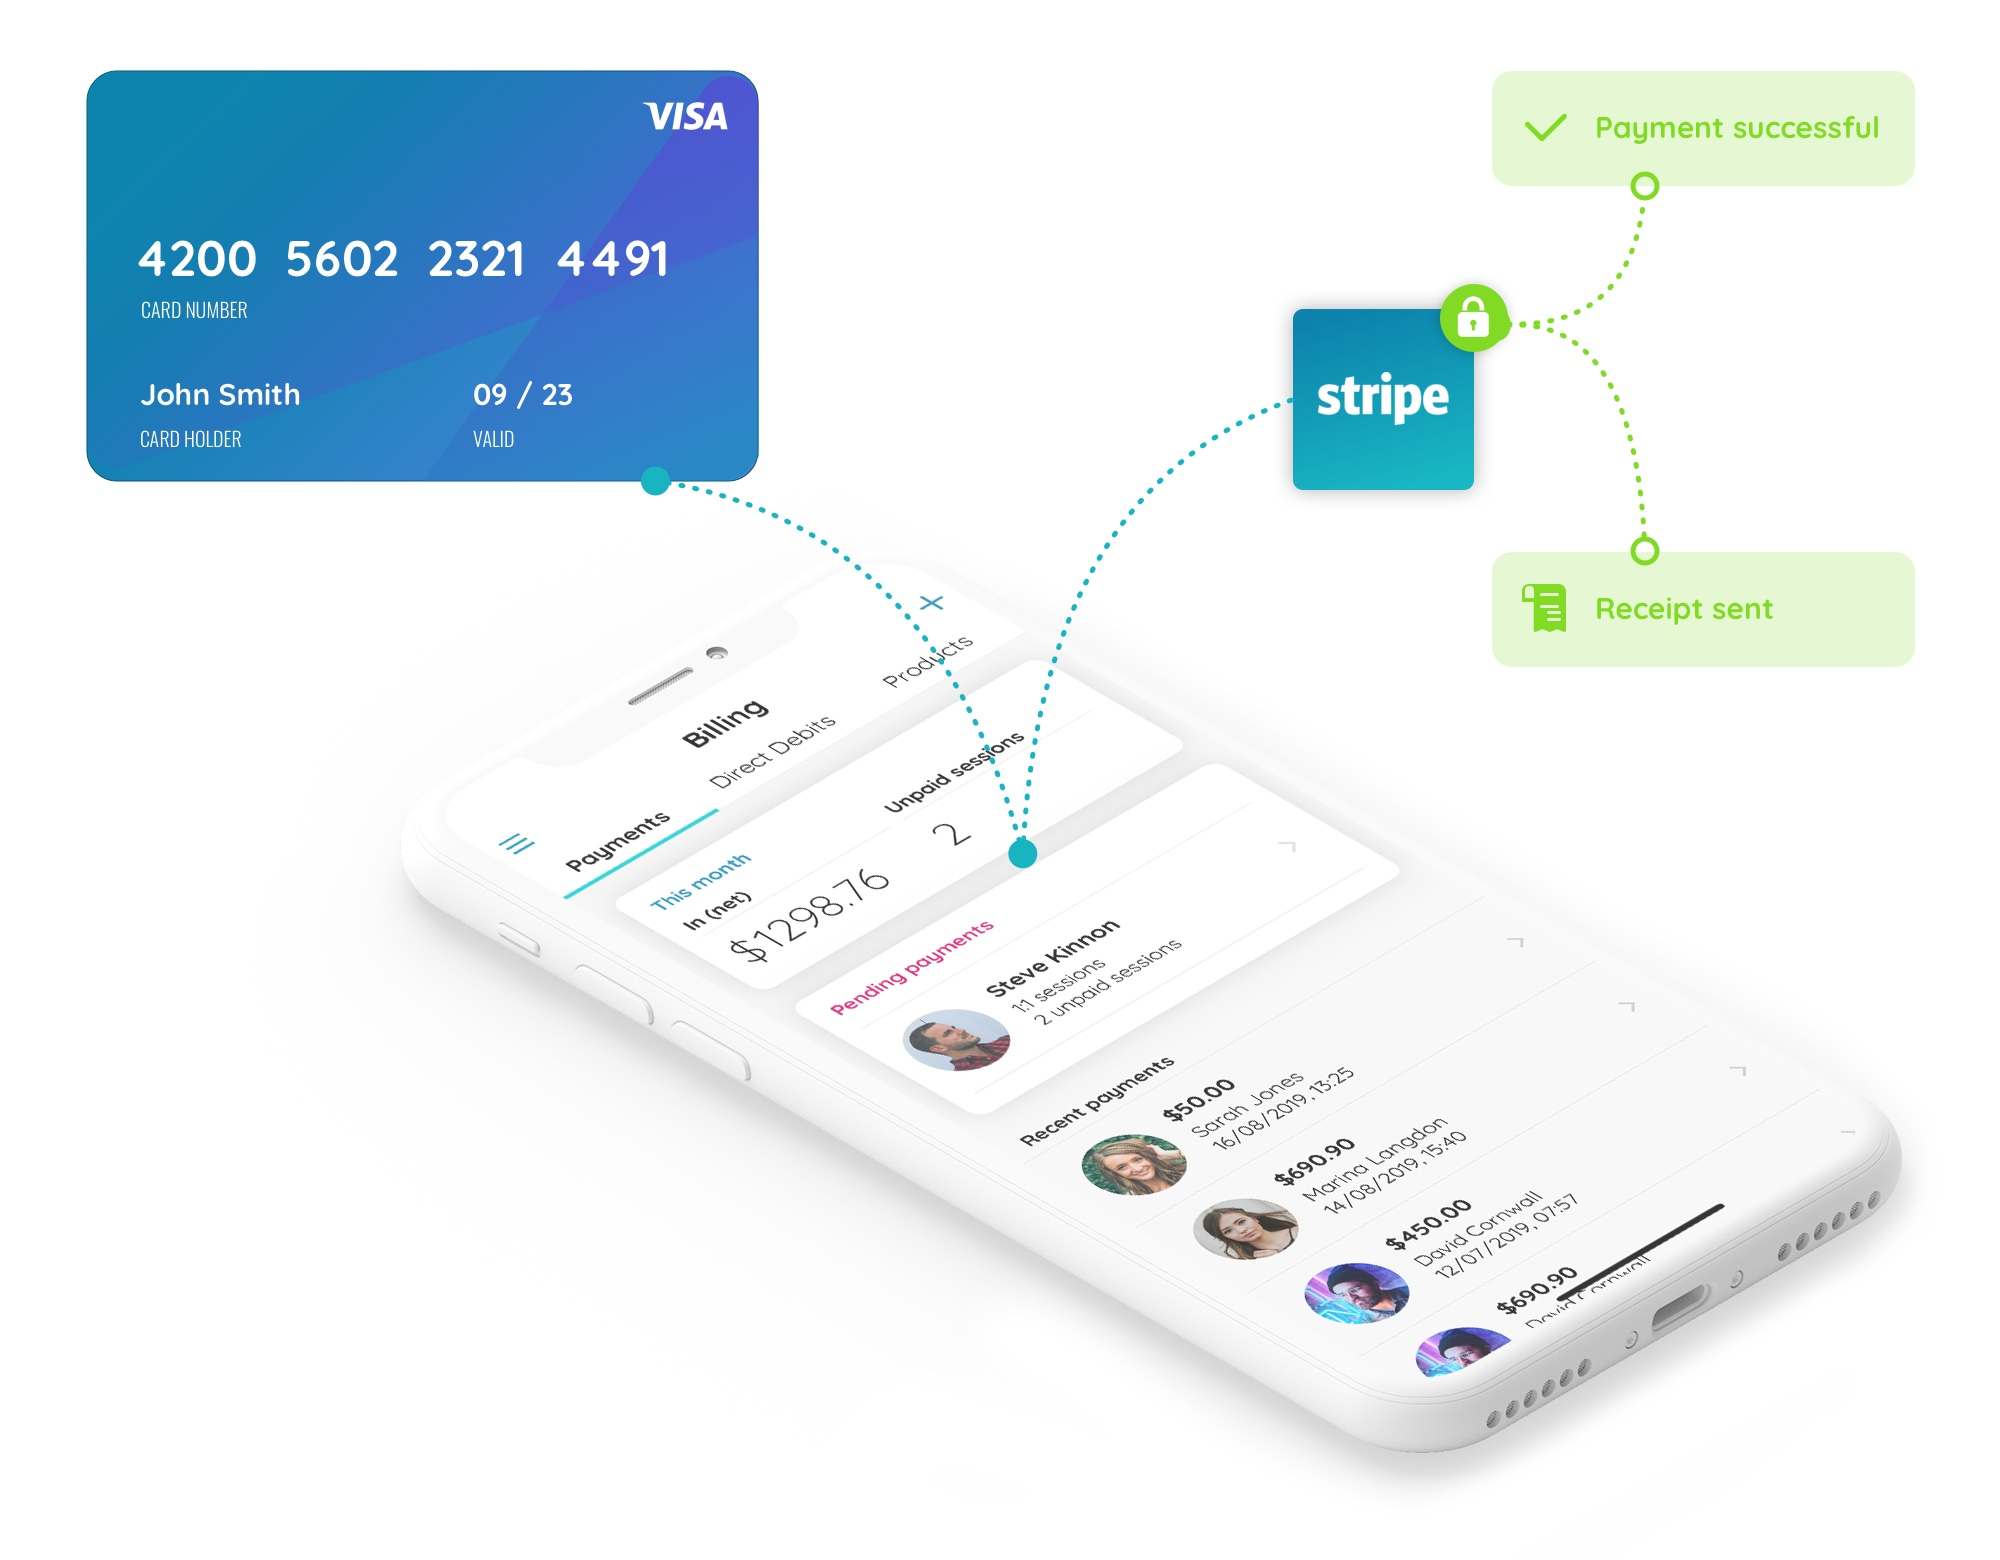 Instant payments with the mobile app